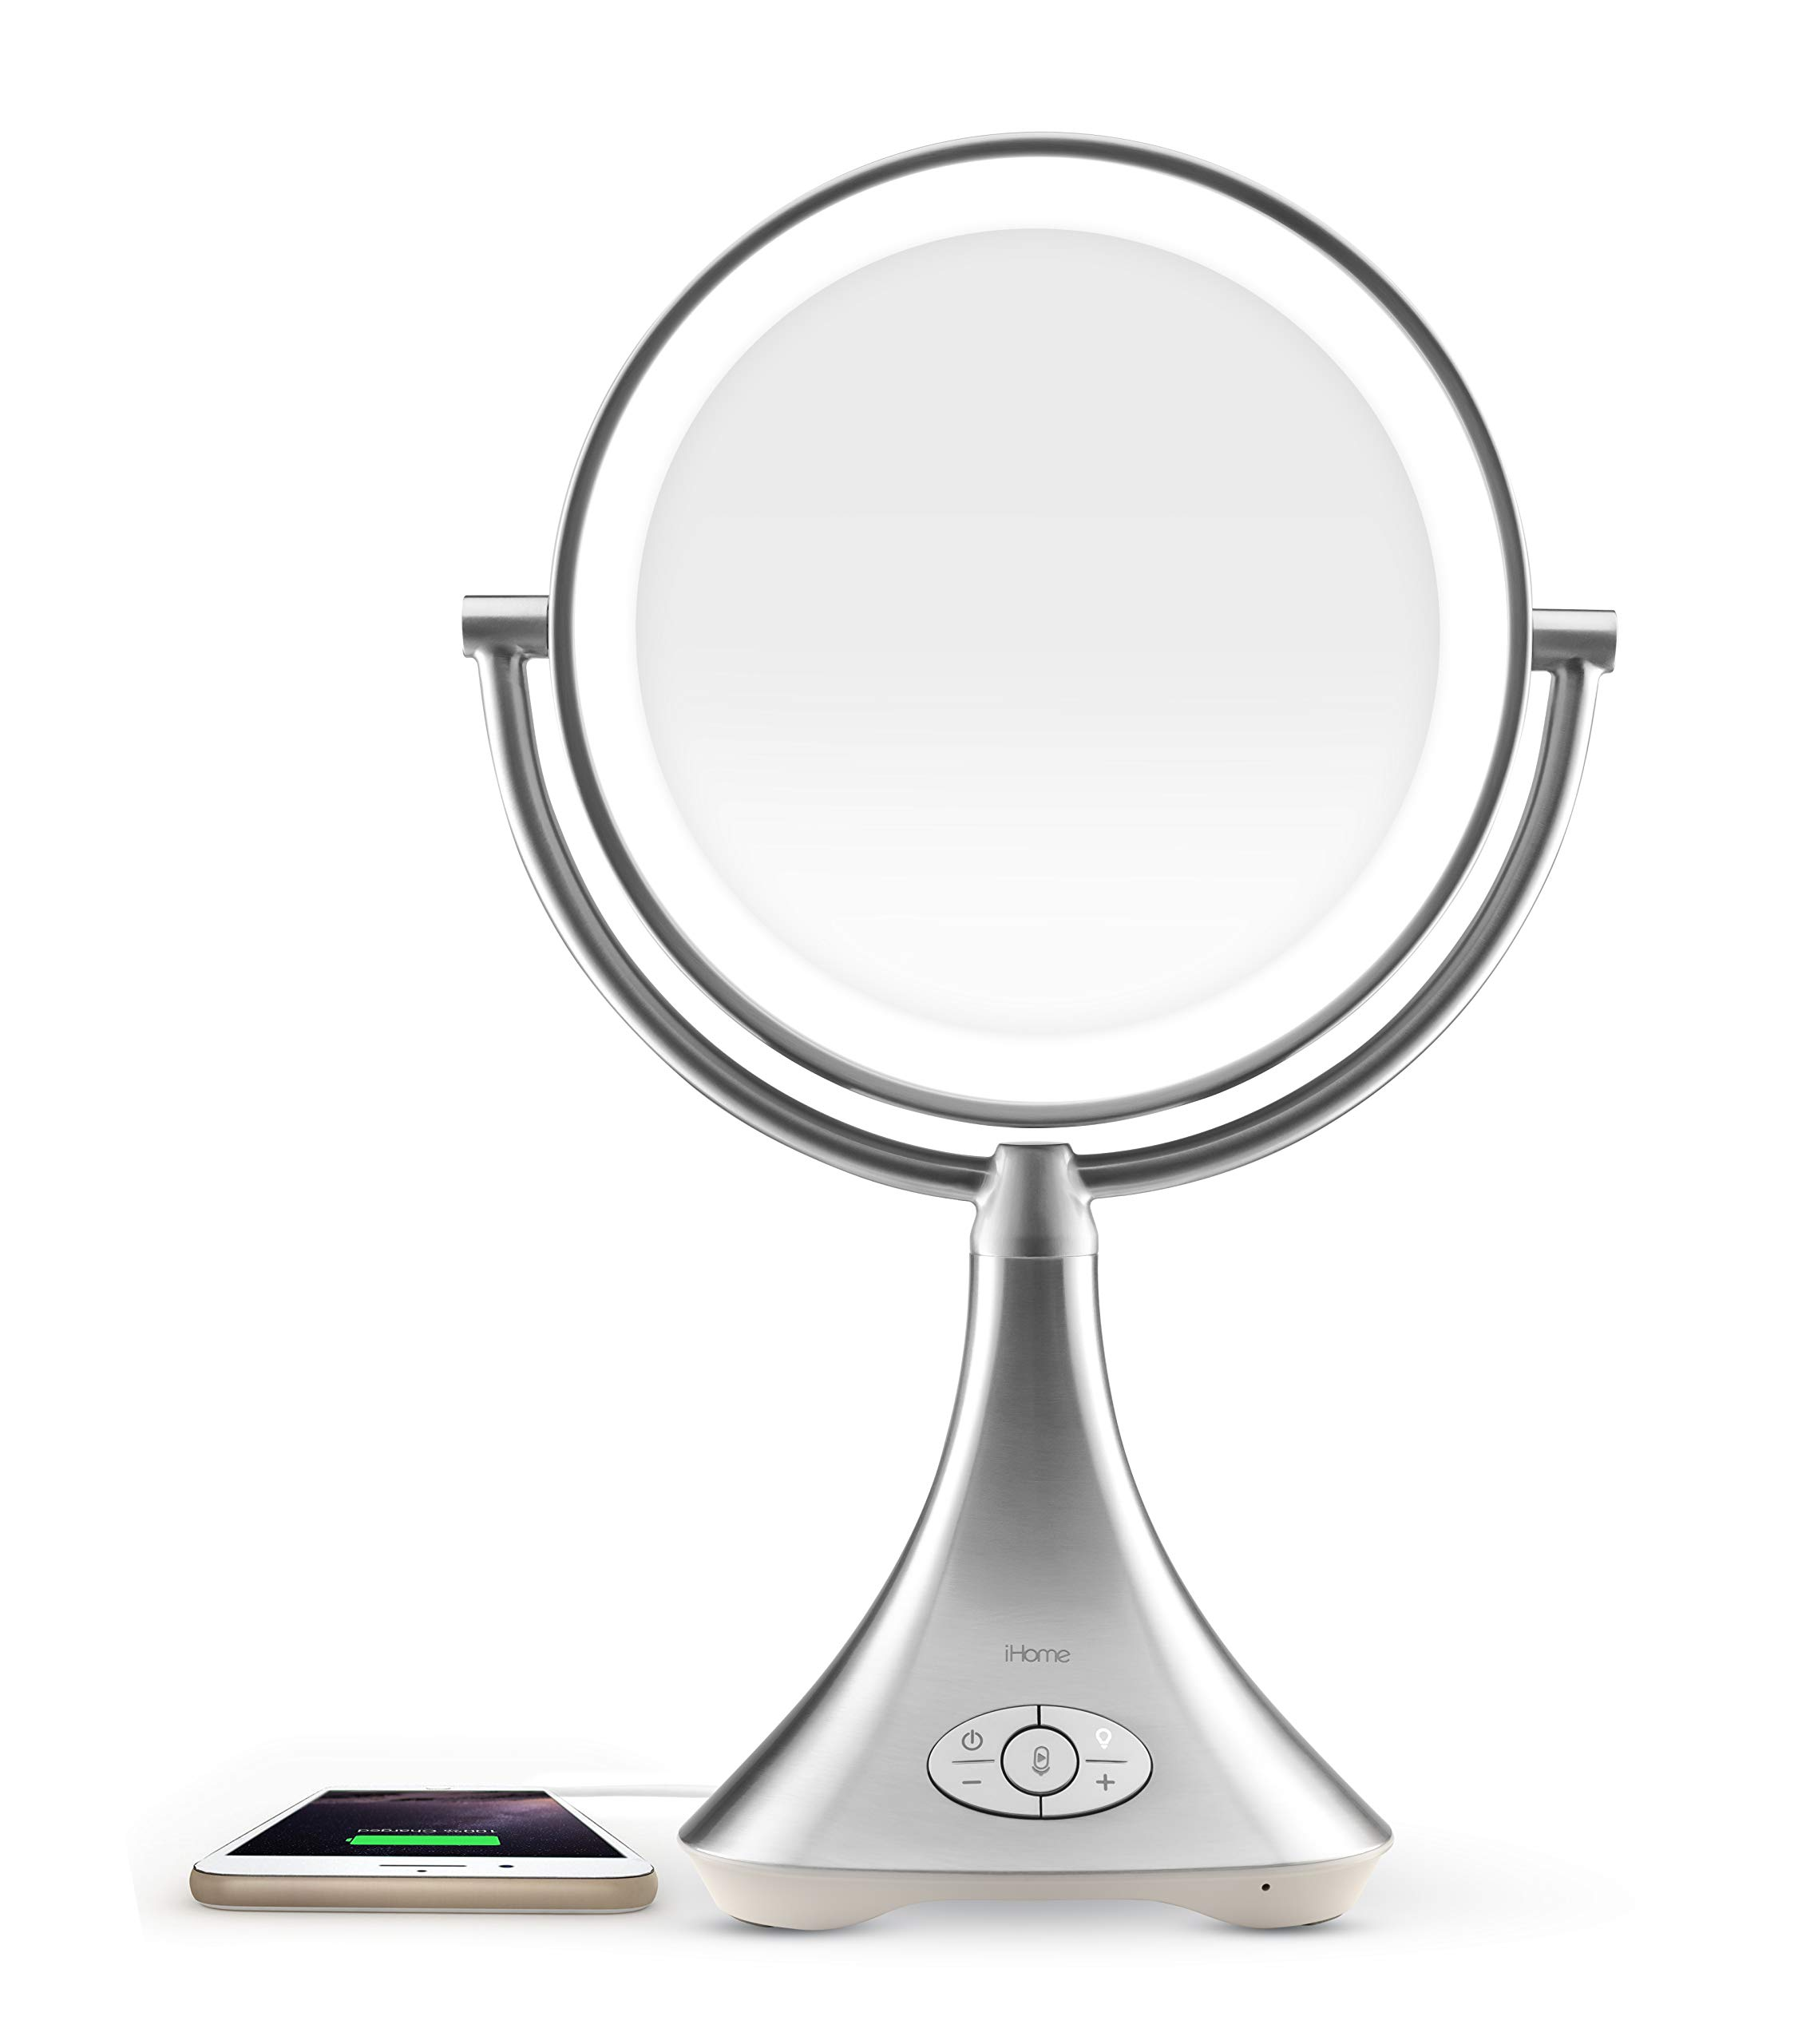 iHome All-in-One, 7X Magnify, 9'' 2-Sided LED Makeup Mirror, Natural Light, Double-Sided Vanity Mirror, Hands-Free Bluetooth Speakerphone, Bluetooth Audio & Phone Charger iCVBT8